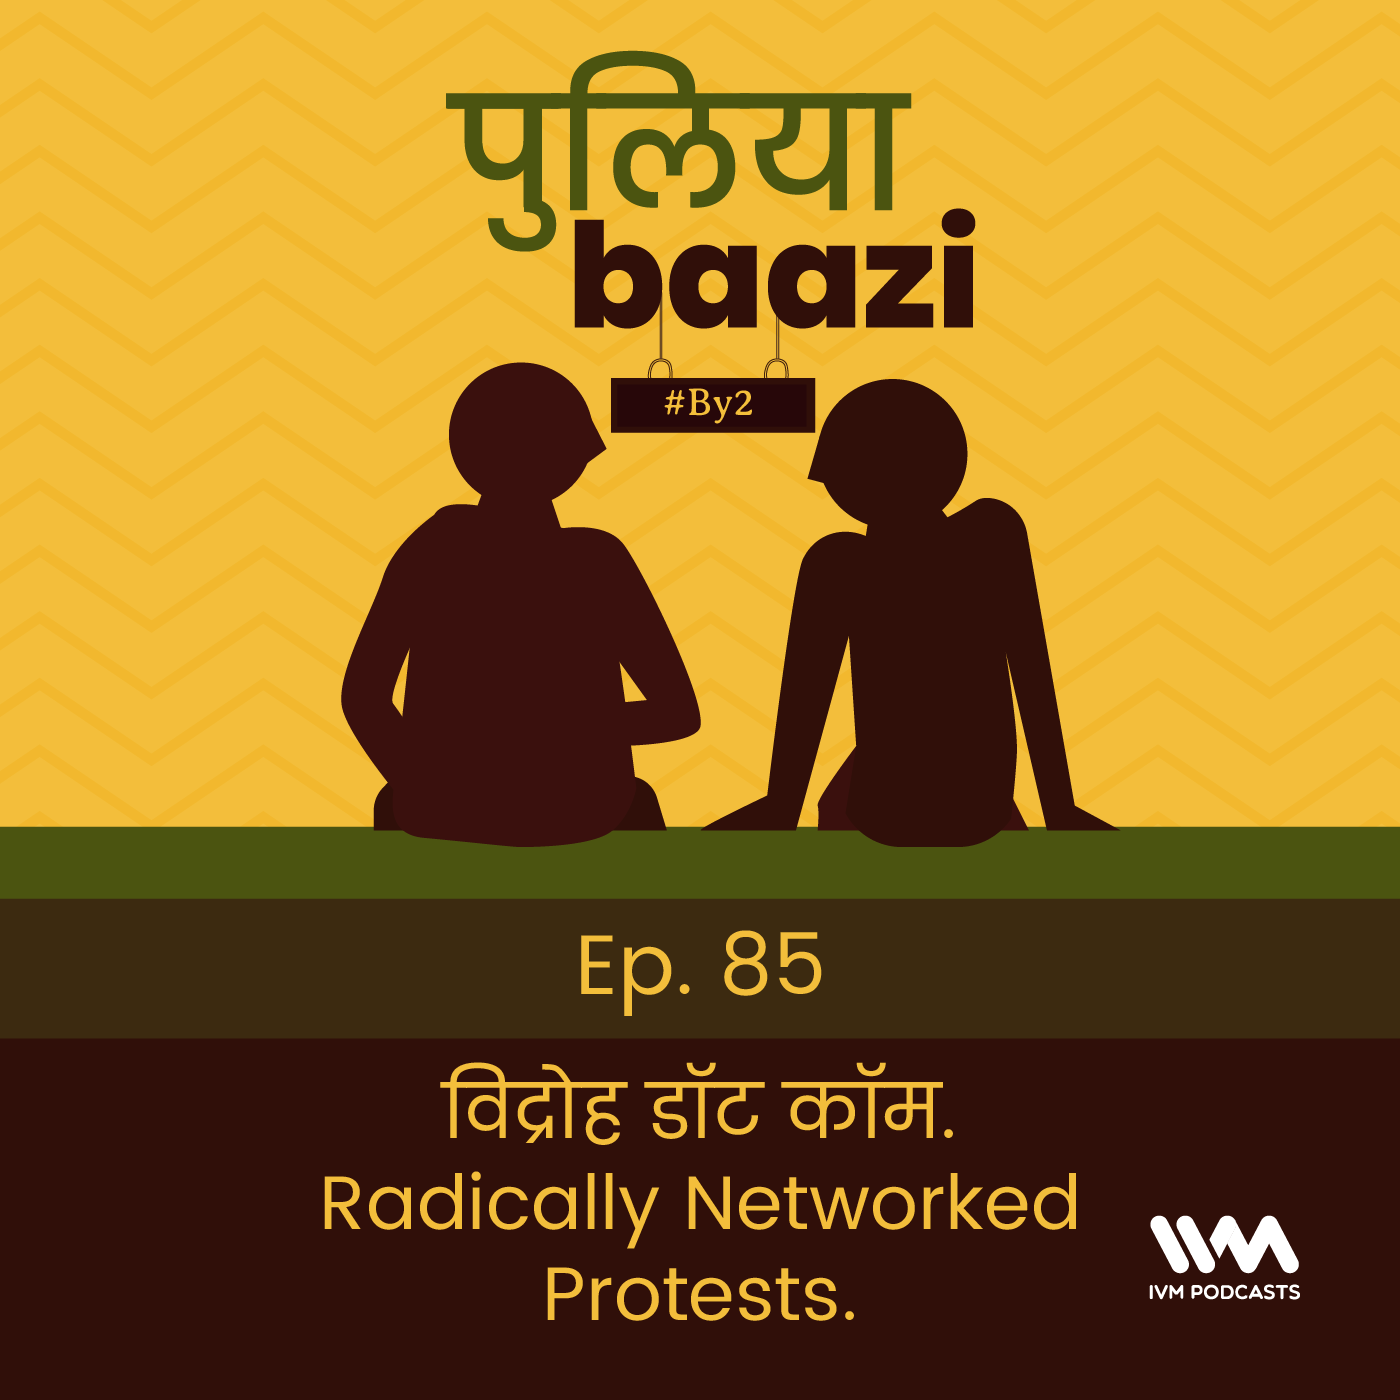 Ep. 85: विद्रोह डॉट कॉम. Radically Networked Protests.